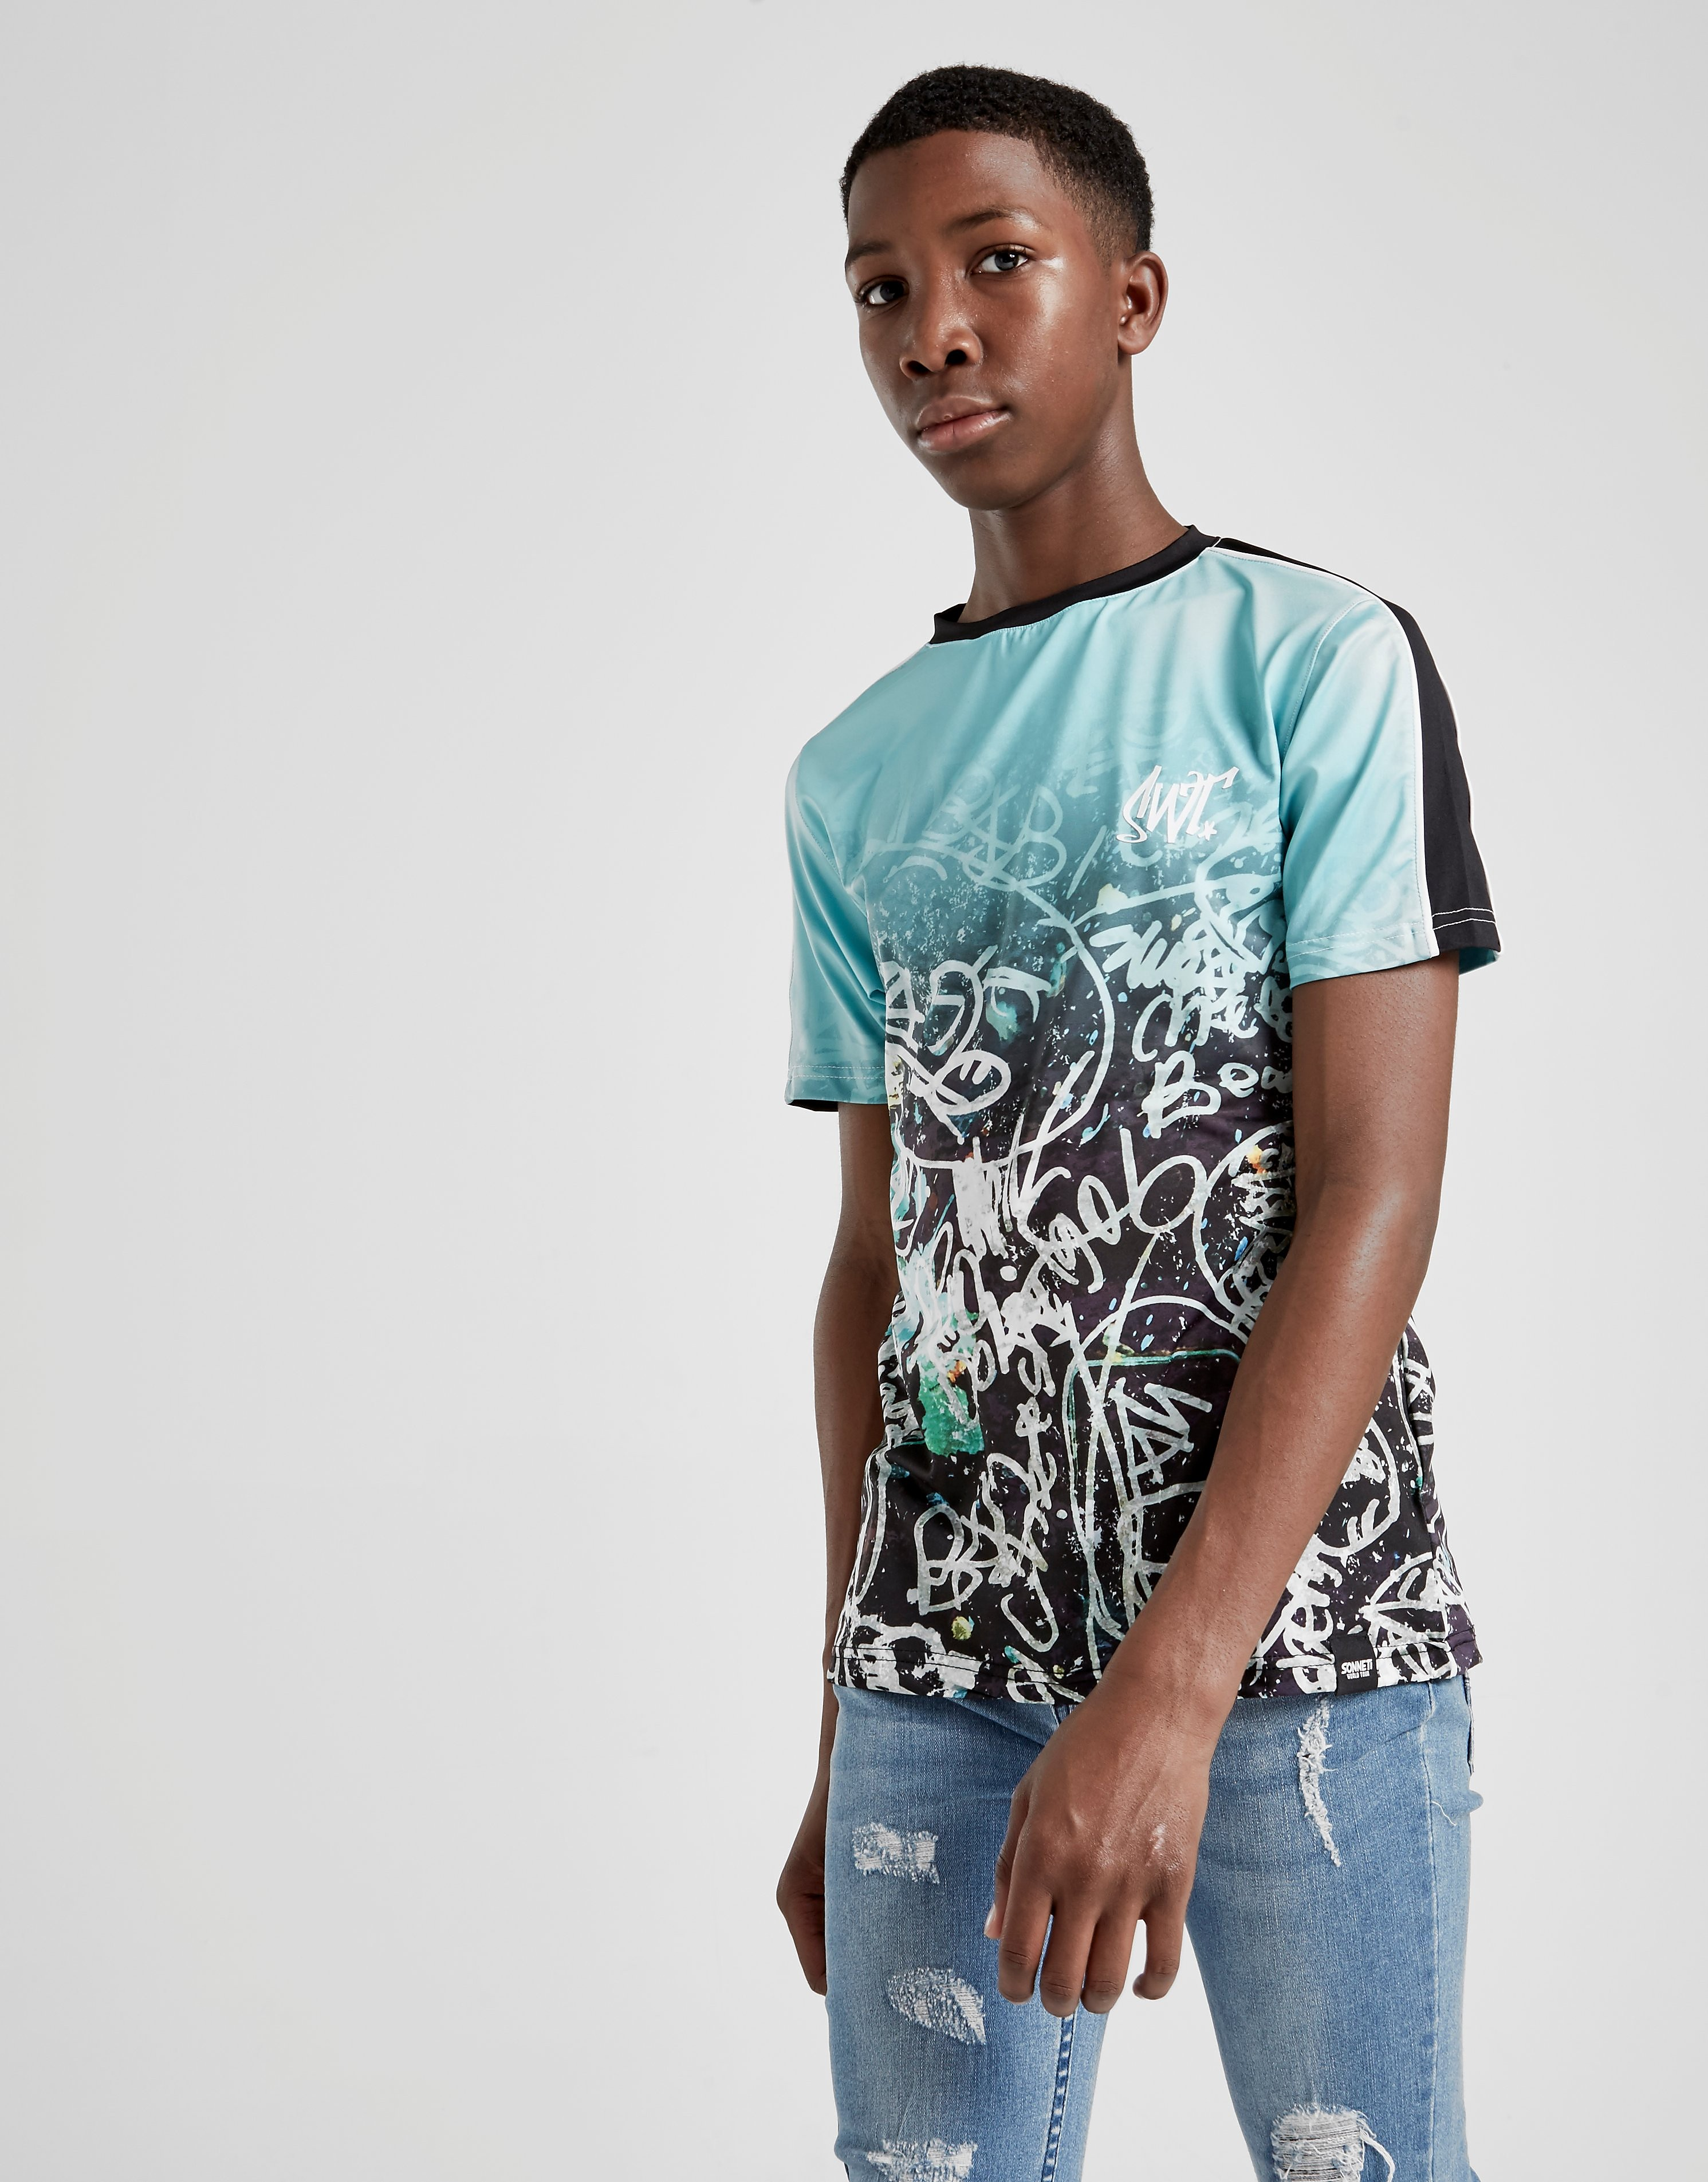 Sonneti Graffiti T-Shirt Junior - alleen bij JD - Teal/Black - Kind